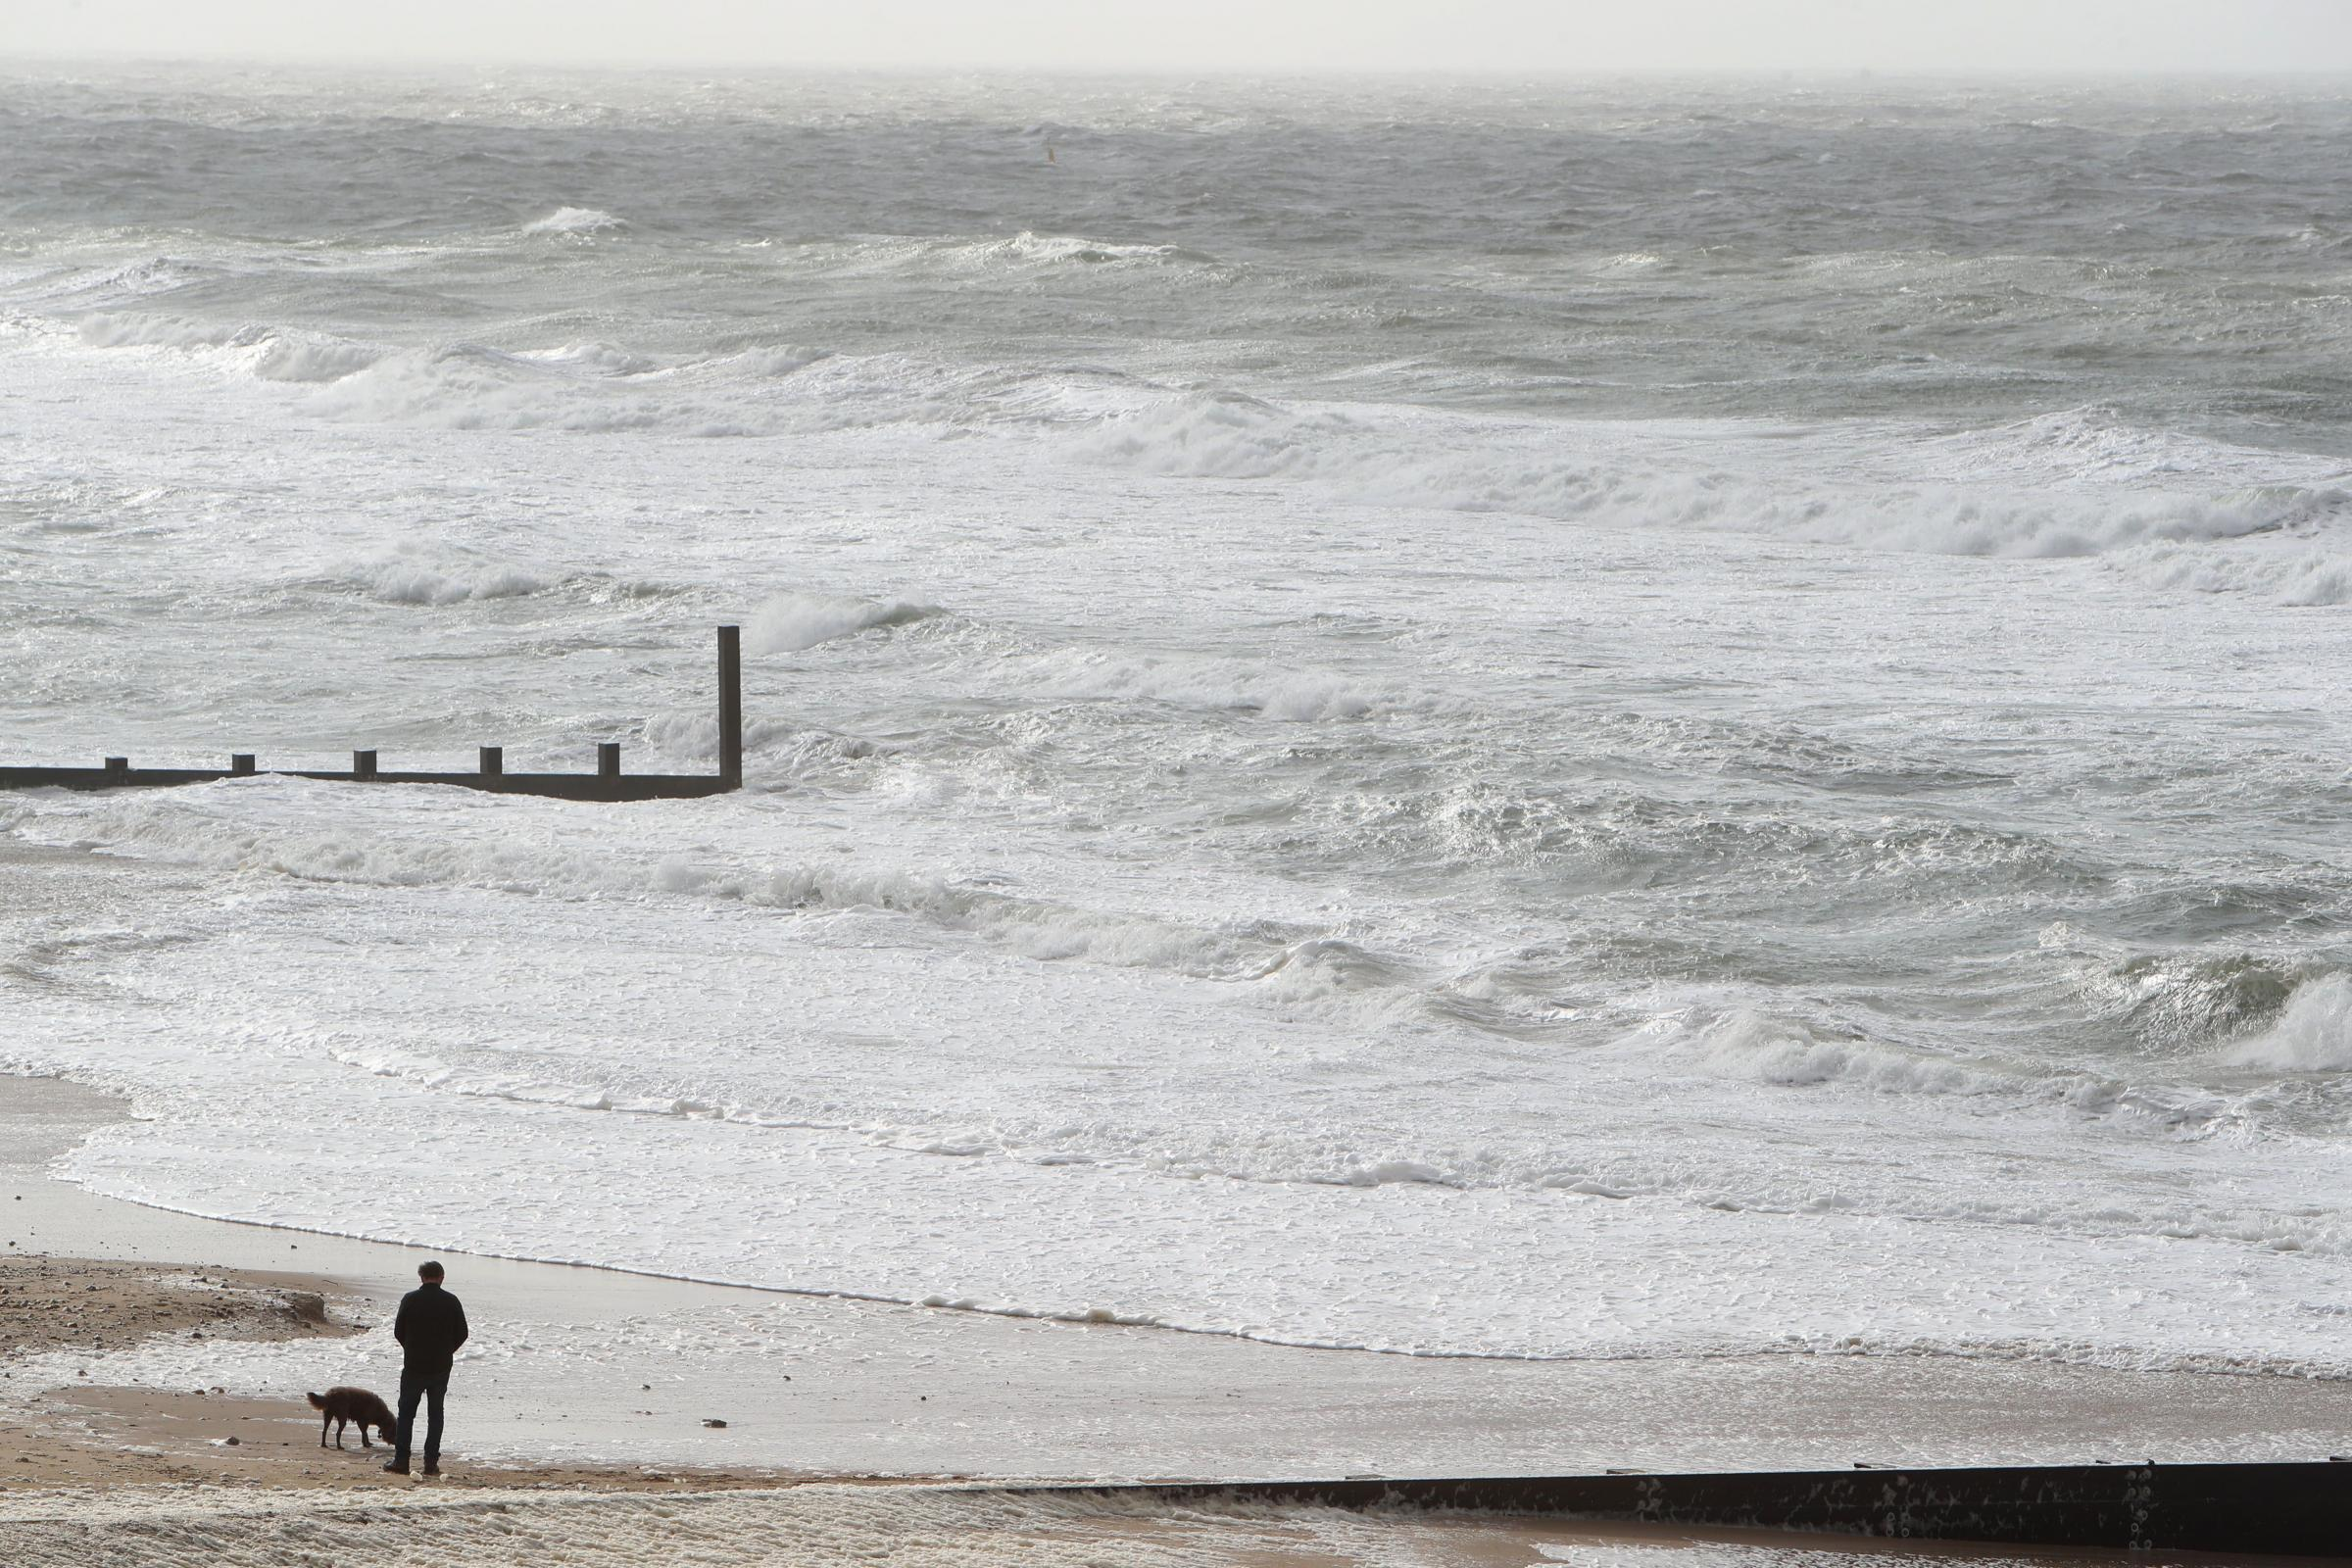 Trees down, trains restricted and roads blocked as strong winds hit Dorset